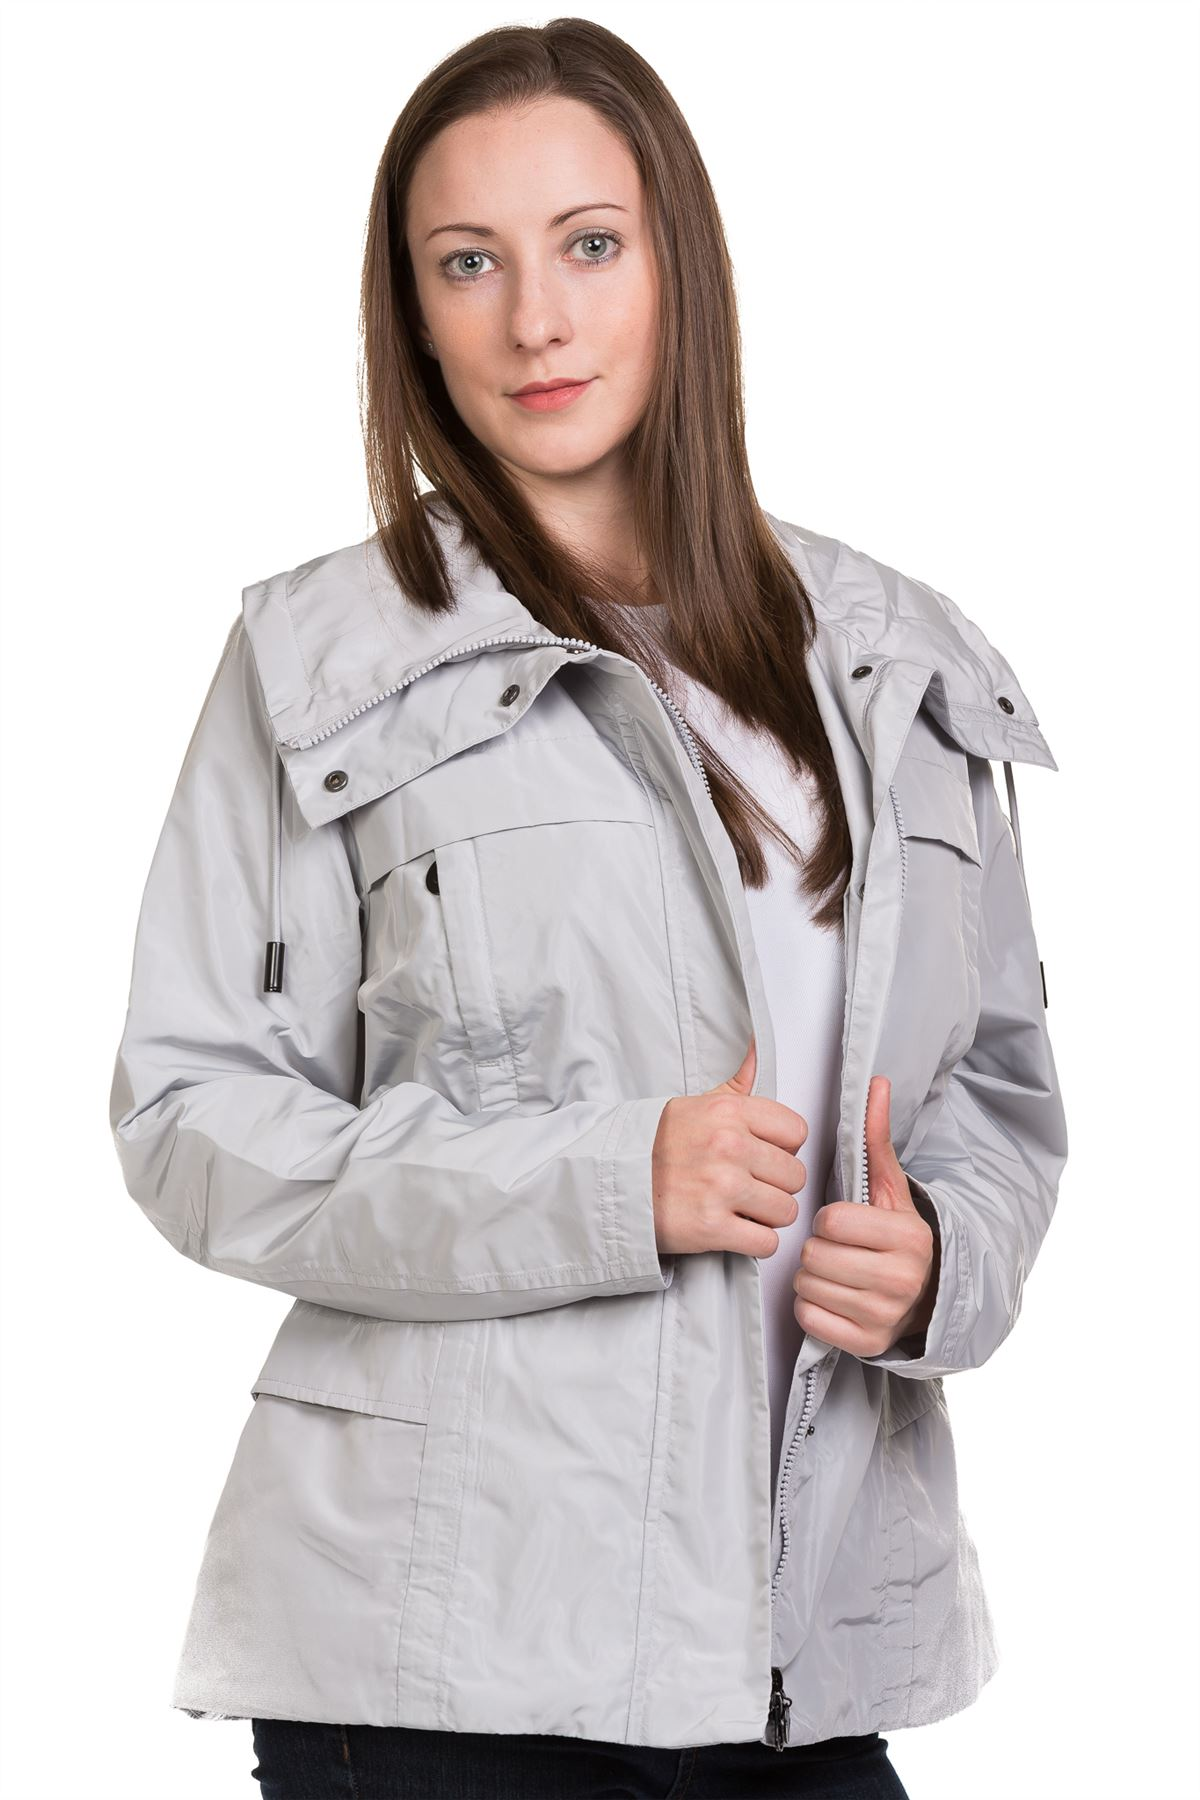 New-Ladies-casual-Jacket-Plain-Lining-Lightweight-Quality-outwear-Coat-8-16 thumbnail 10